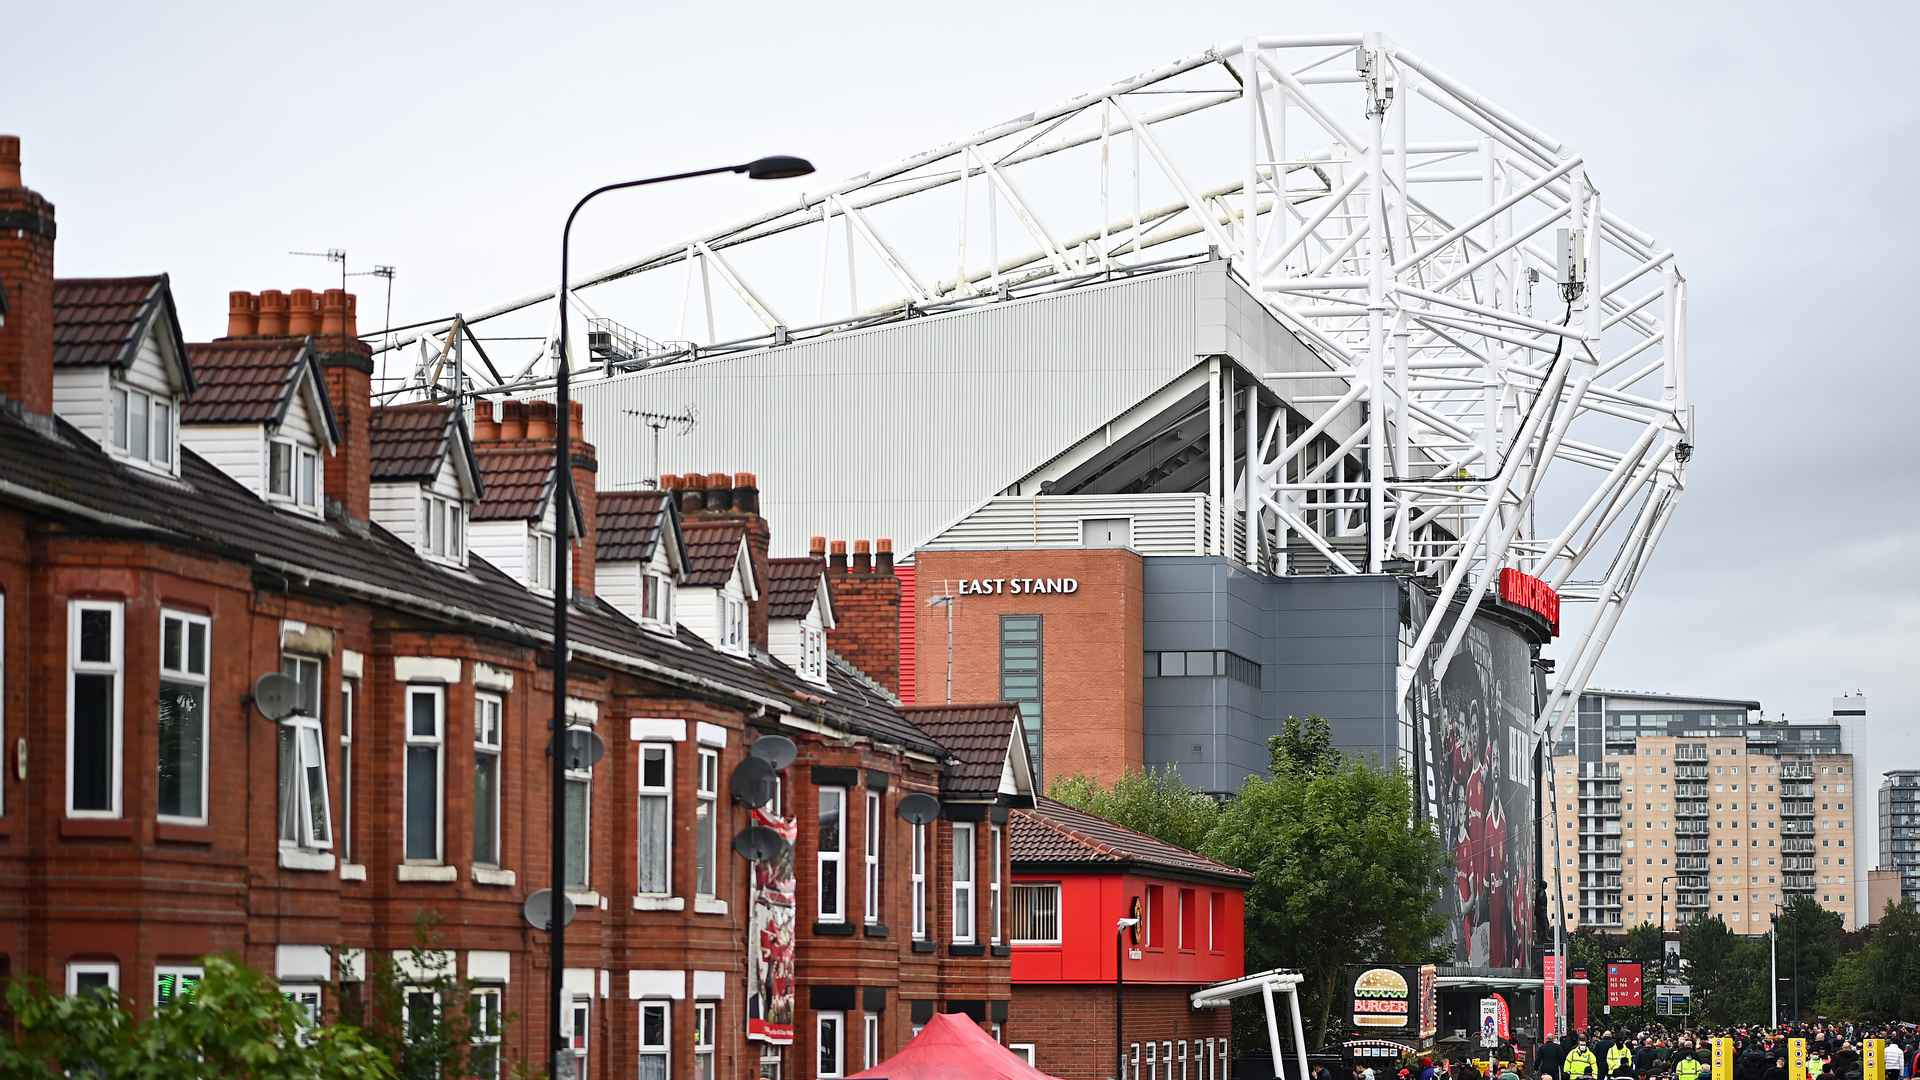 Will you be at Old Trafford on Sunday?